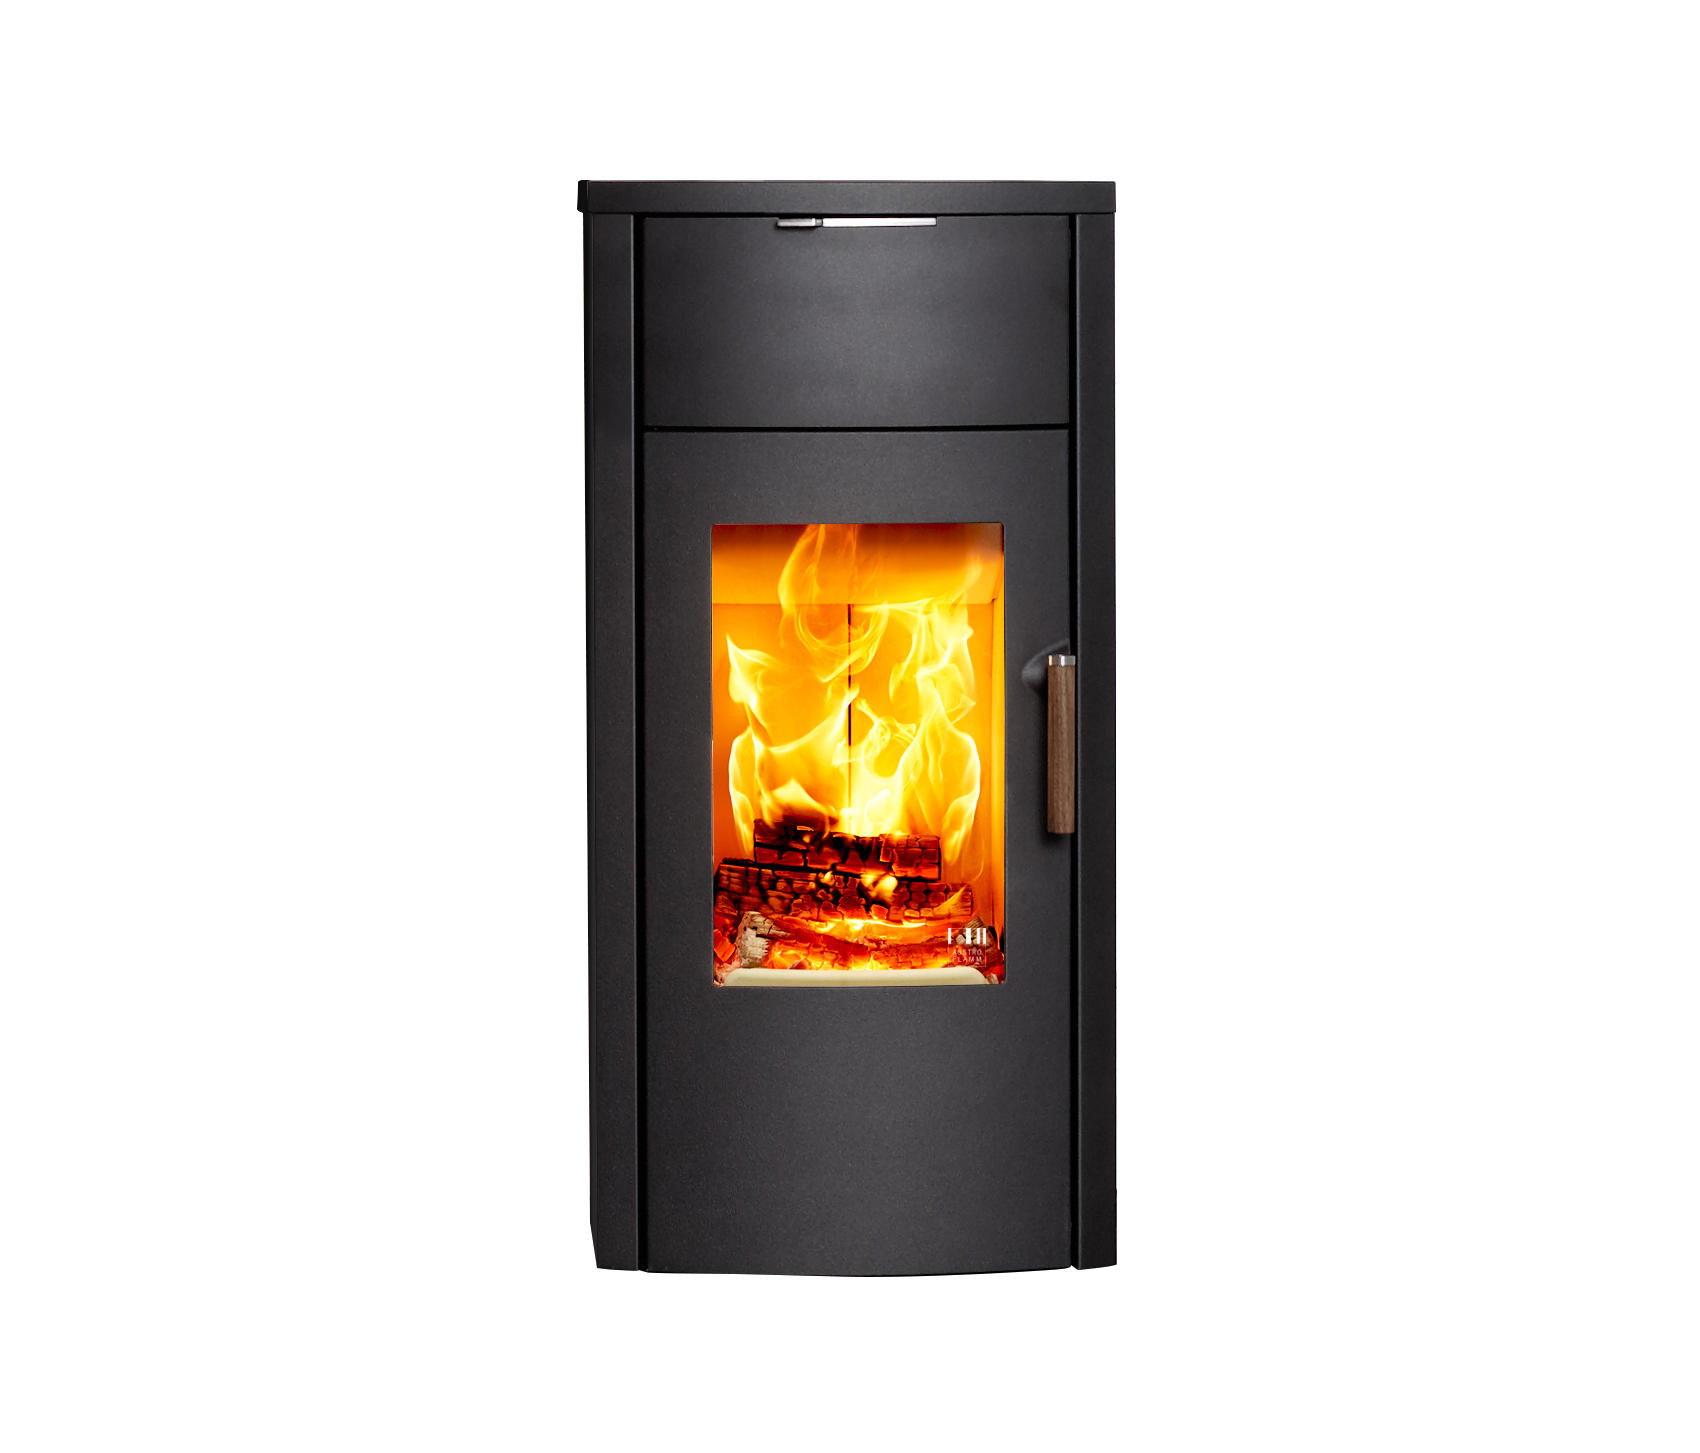 Kaminofen Austroflamm Stila Jini Stoves From Austroflamm Architonic